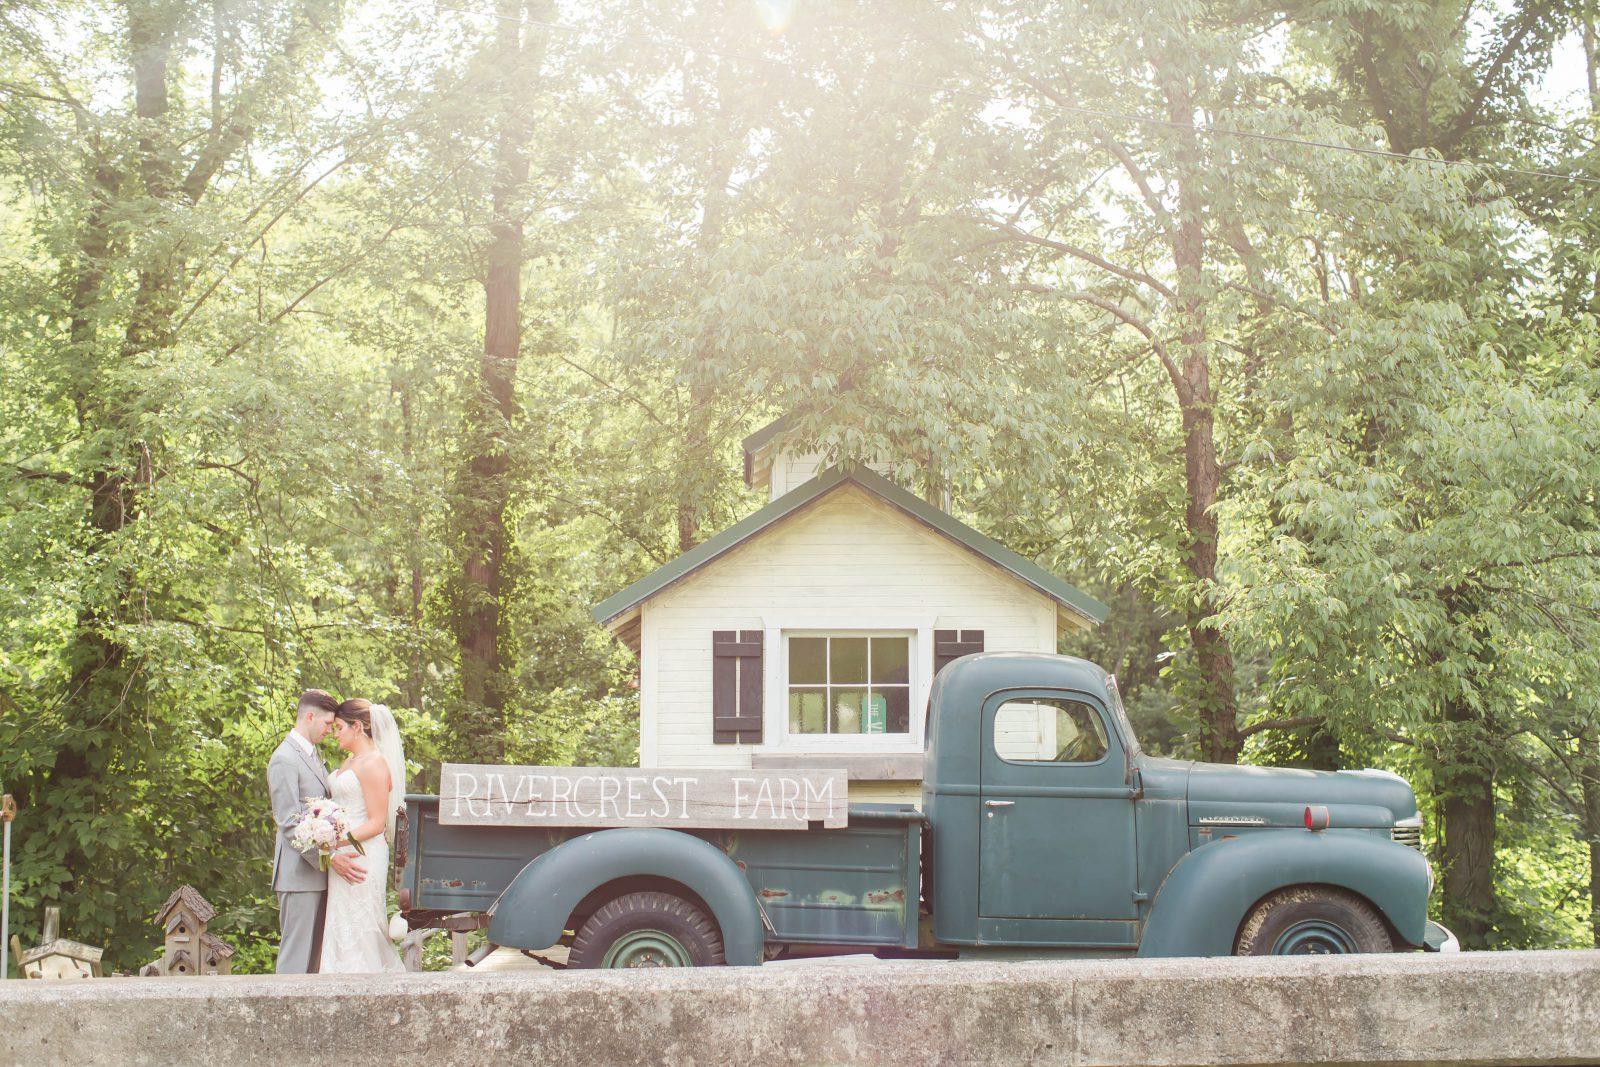 rivercrest-farm-summer-wedding-loren-jackson-photography-87